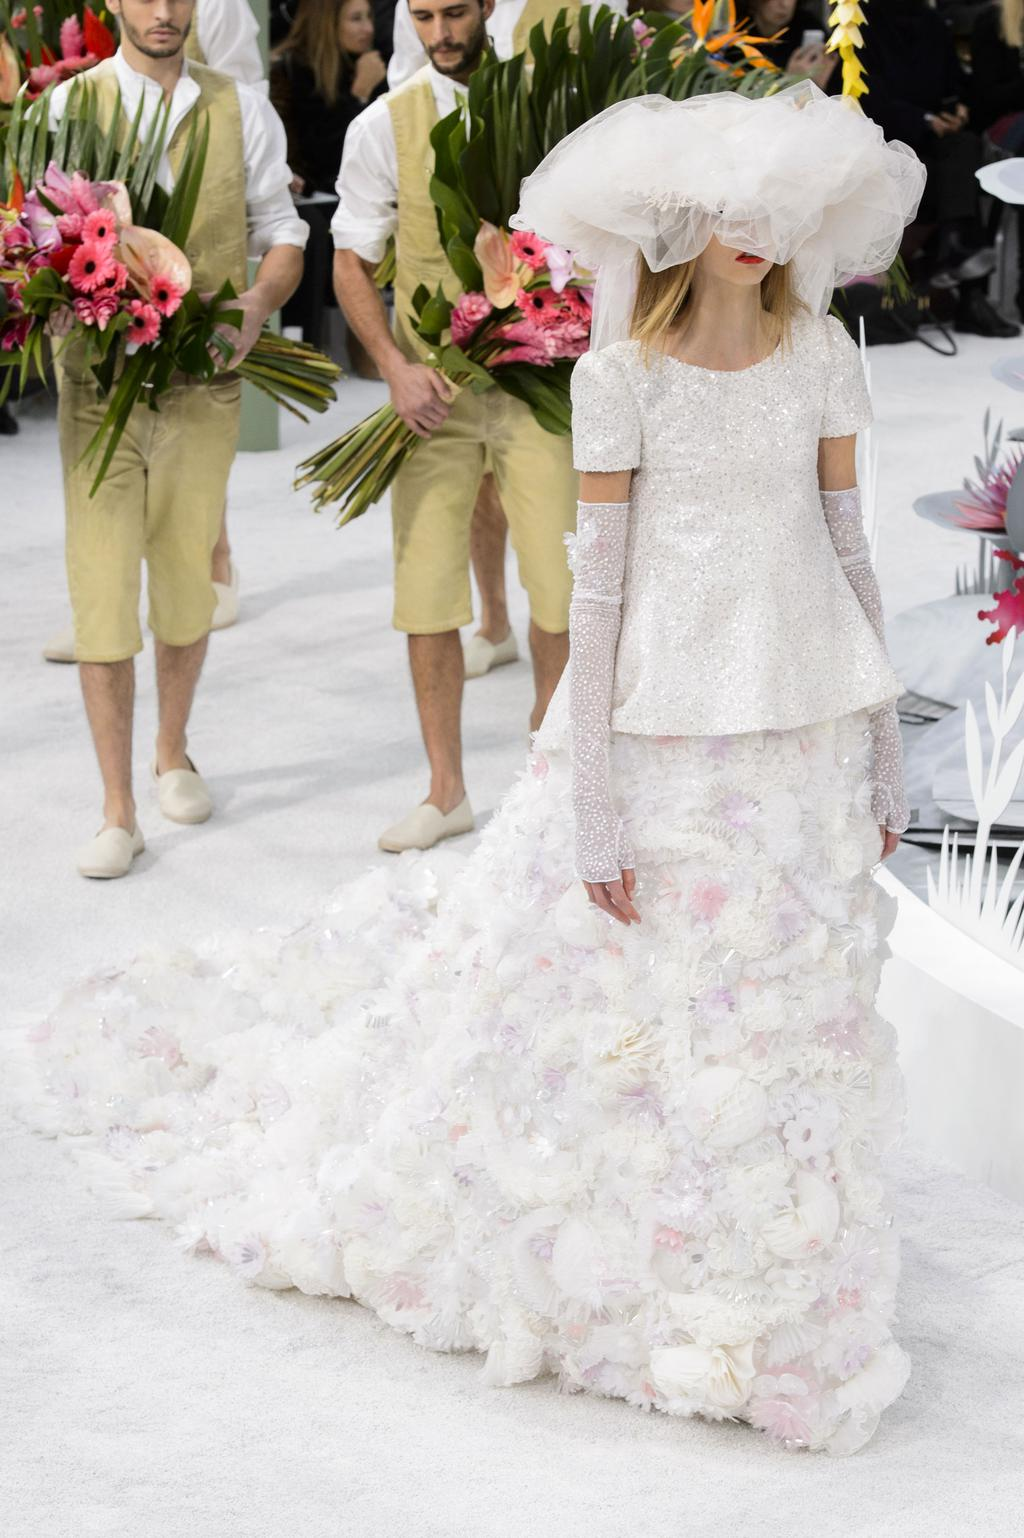 Haute couture printemps ete 2015 chanel percy mode for Chanel haute couture 2015